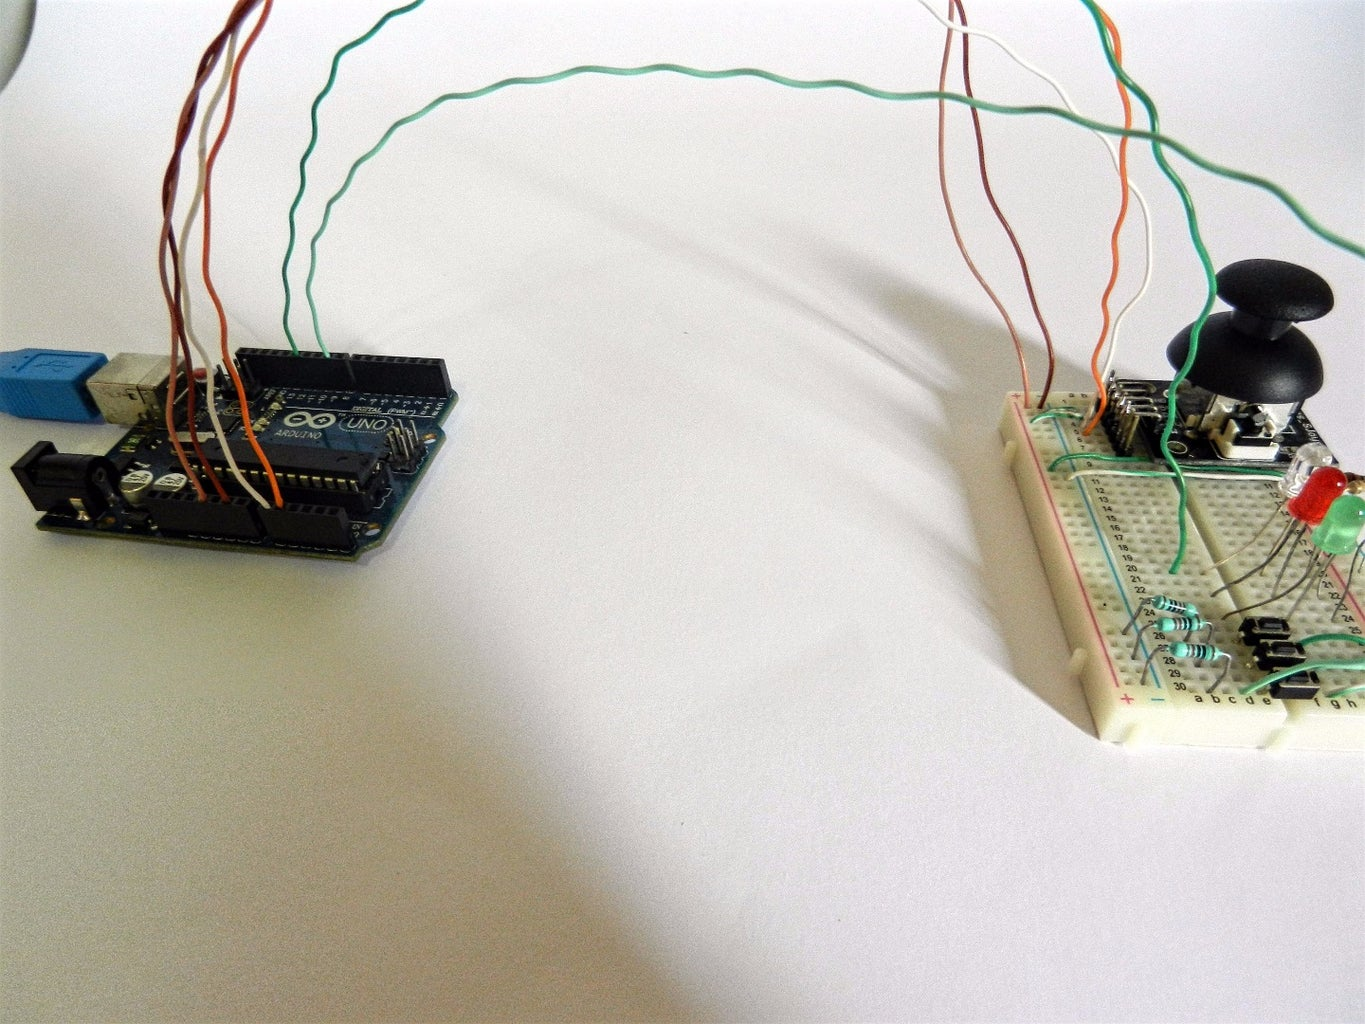 Have a Small Breadboard Always Ready